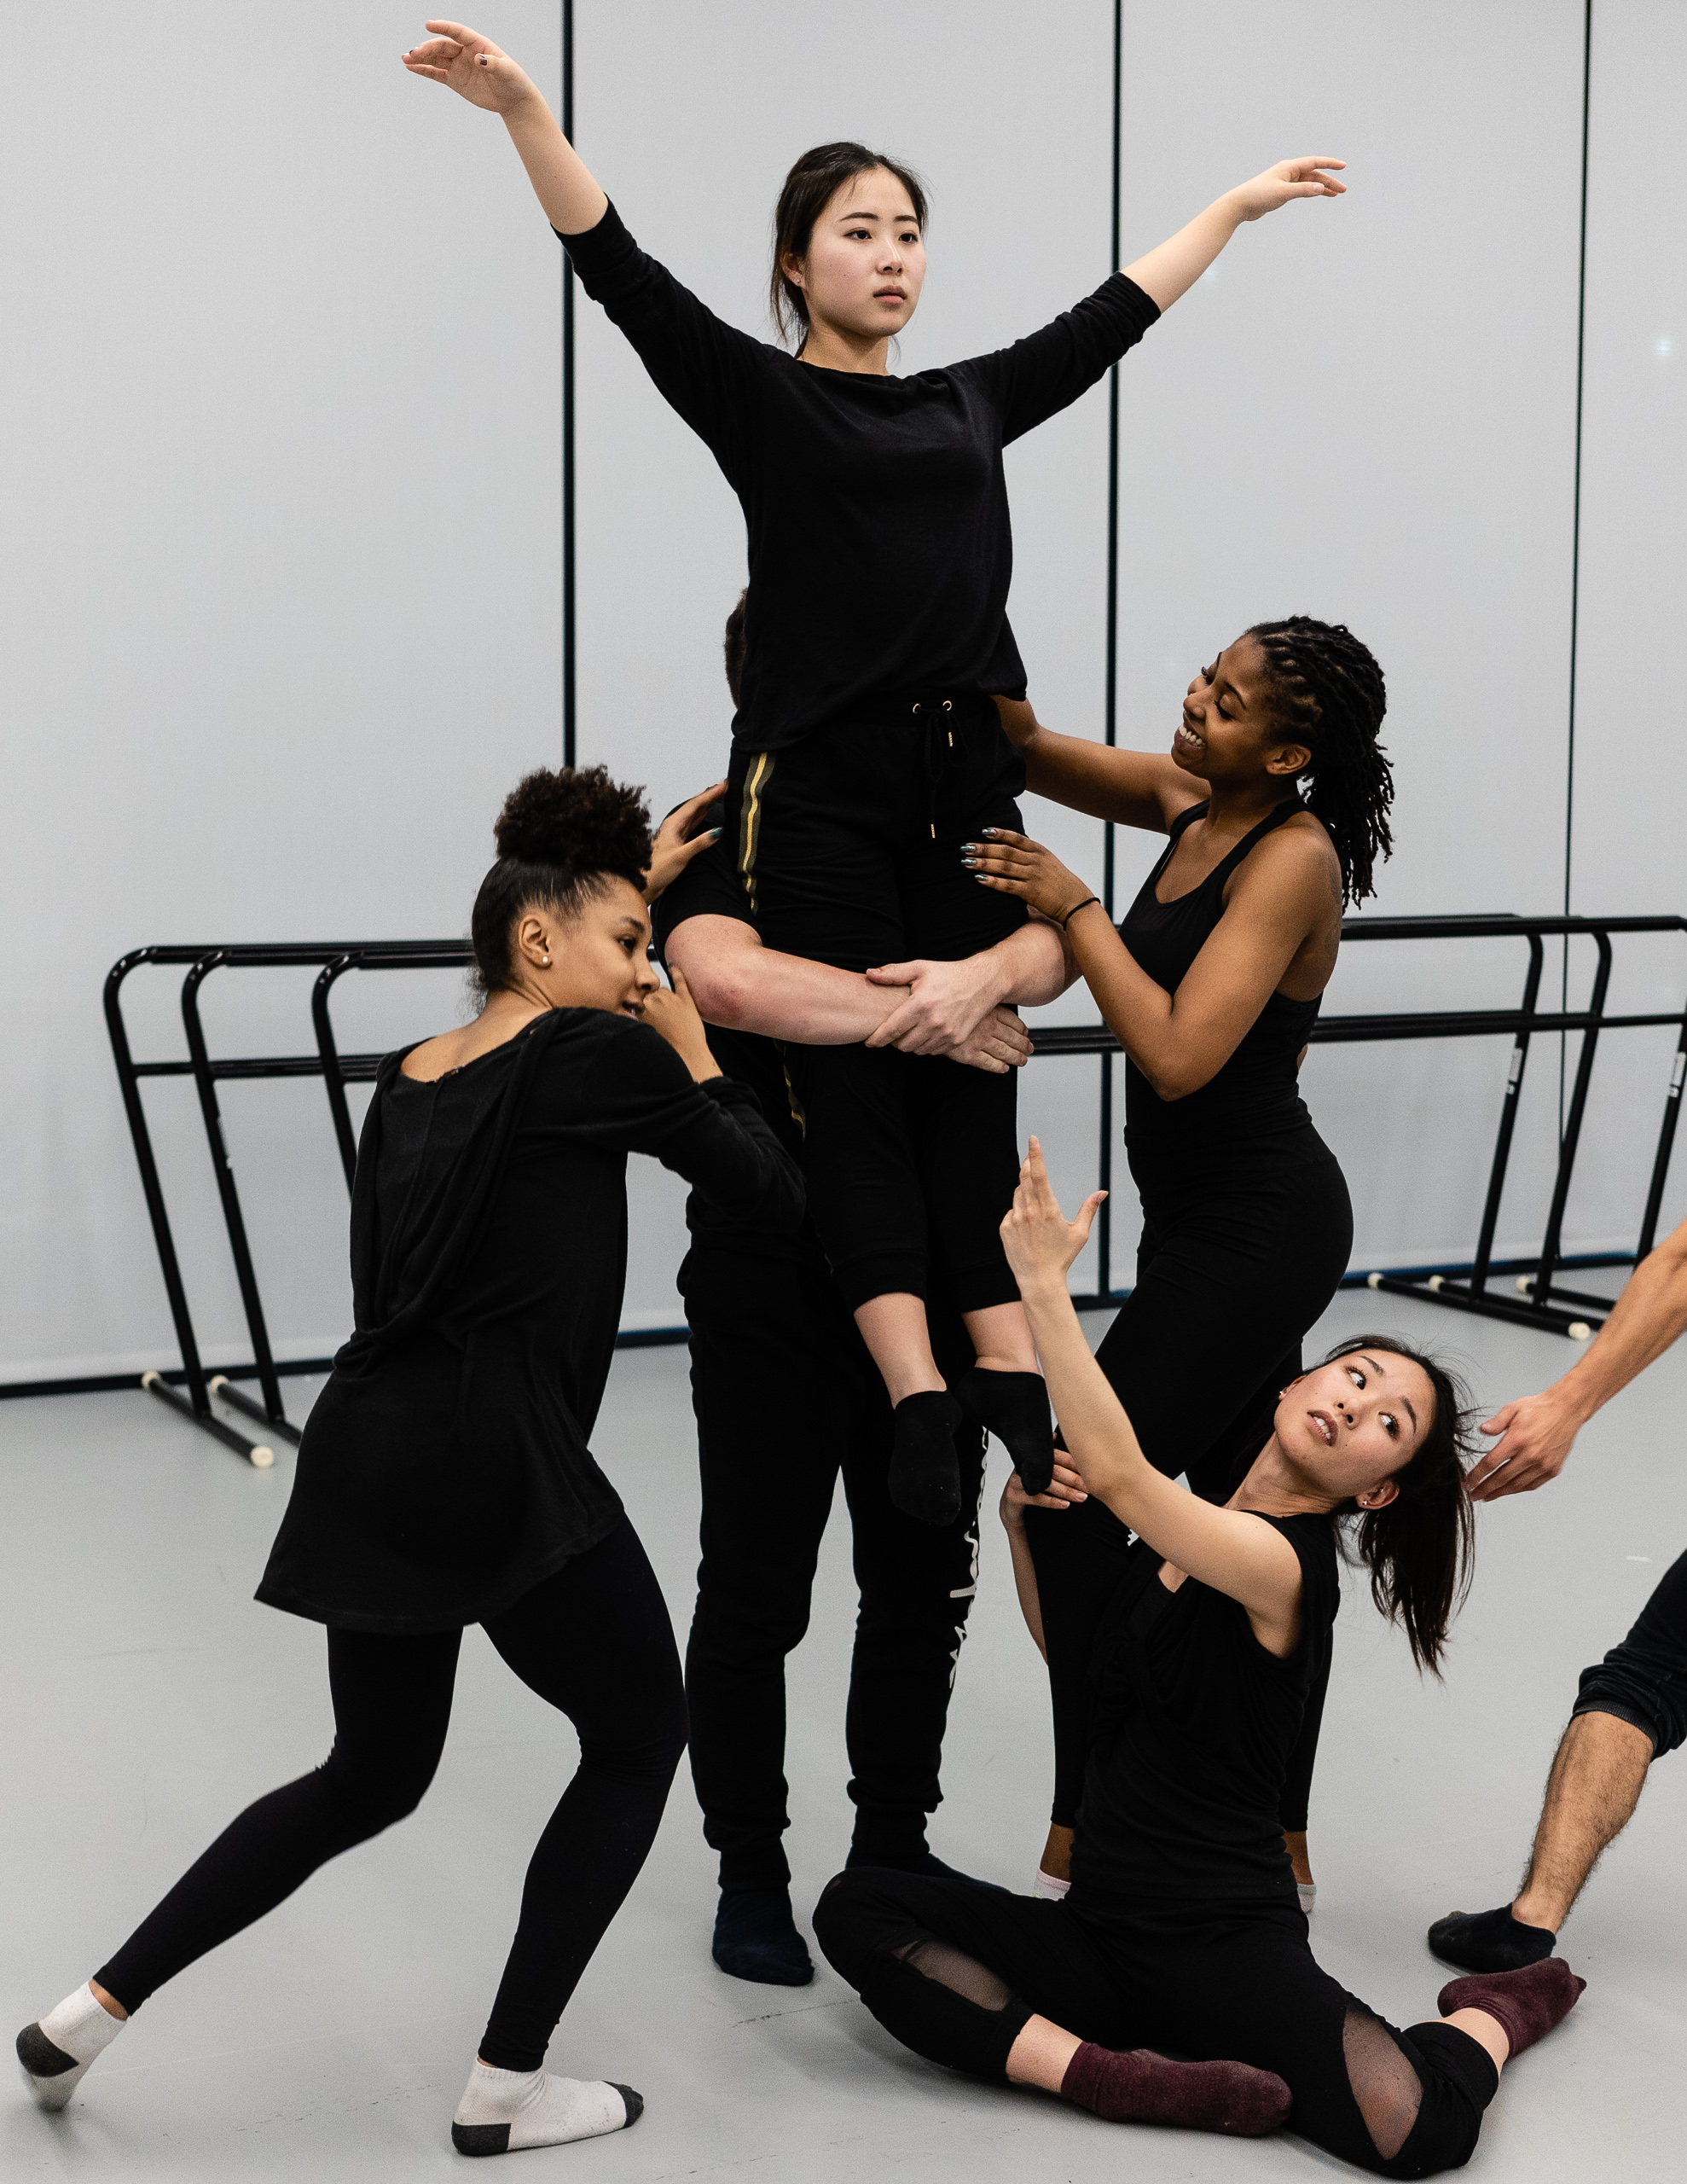 SMC dance major Yurino Niyama is held aloft by dancers in a rehearsal at SMC's Core Performance Center on Tuesday, Feb. 26, 2019. The dancers are rehearsing for student choreographer Erik Fine's new work titled by the number seven written in tally marks. Fine's choreography will premiere at Synapse Dance Theater at the Broad Stage at SMC's Performing Arts Center campus on Friday and Saturday, May 24 and 25. (Glenn Zucman/The Corsair)